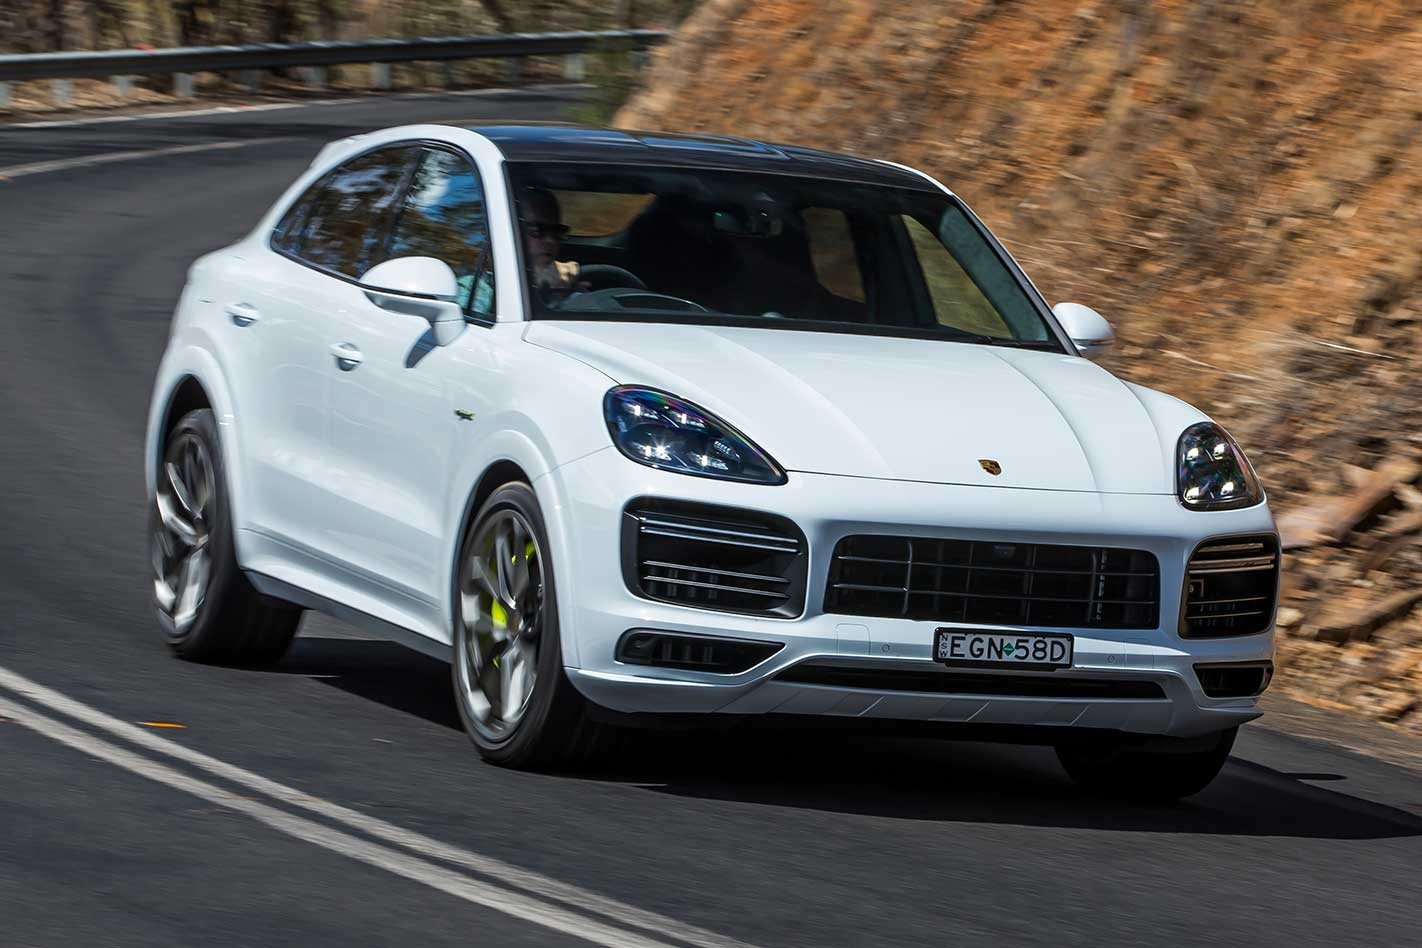 Porsche Cayenne Turbo S E Hybrid Coupe 2020 Review